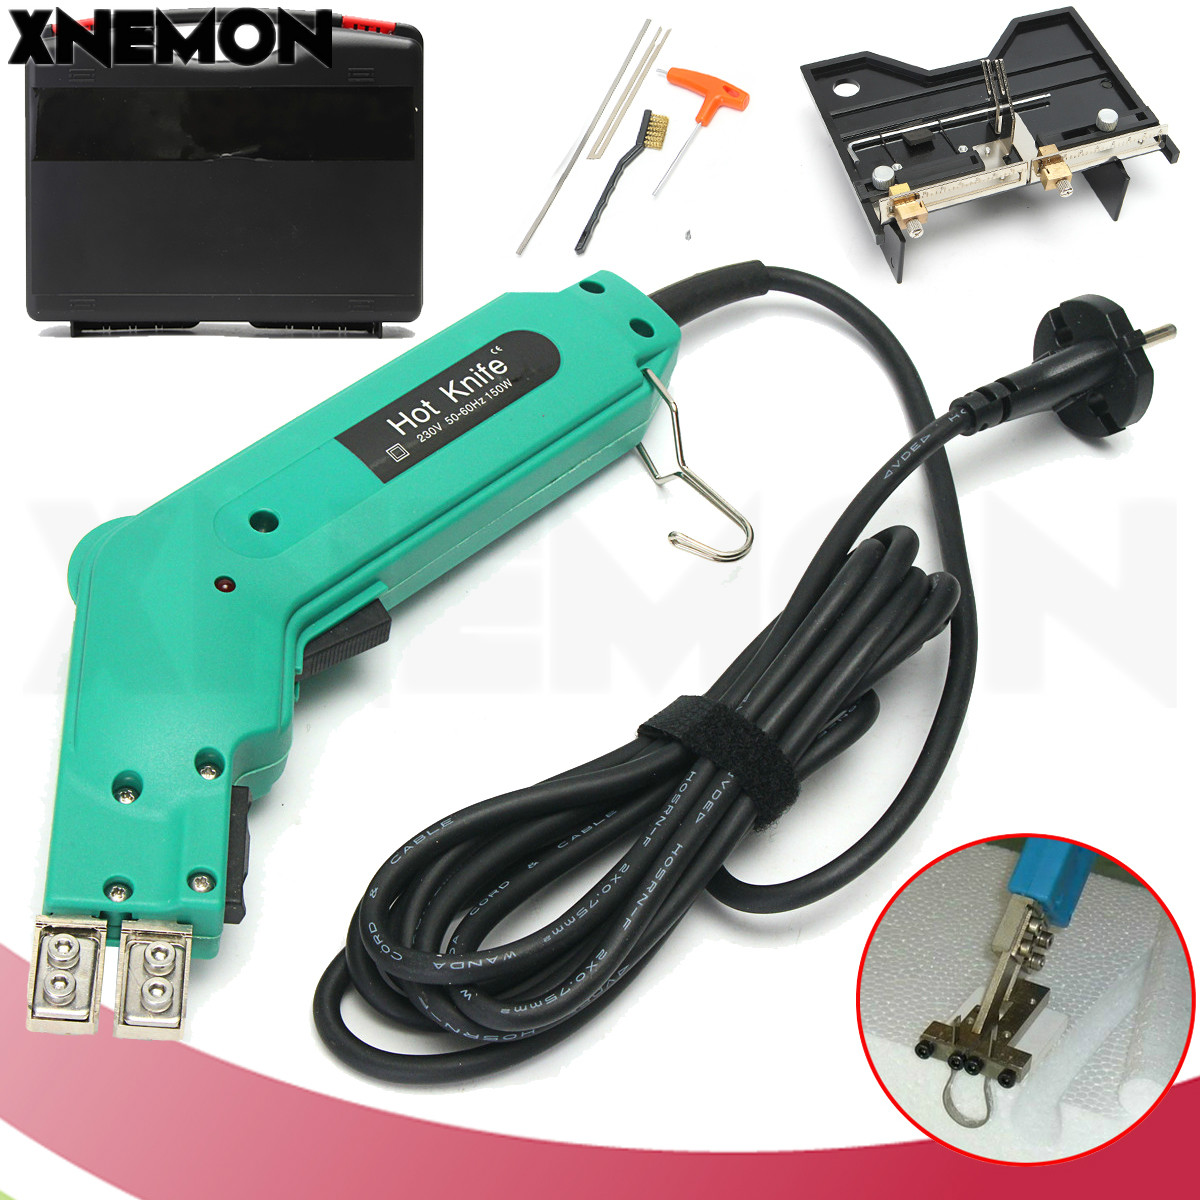 XNEMON Groove Electric Hot Knife Foam Cutter Hot Wire Styrofoam Craft Tool Cutting Grooving Heating Machine